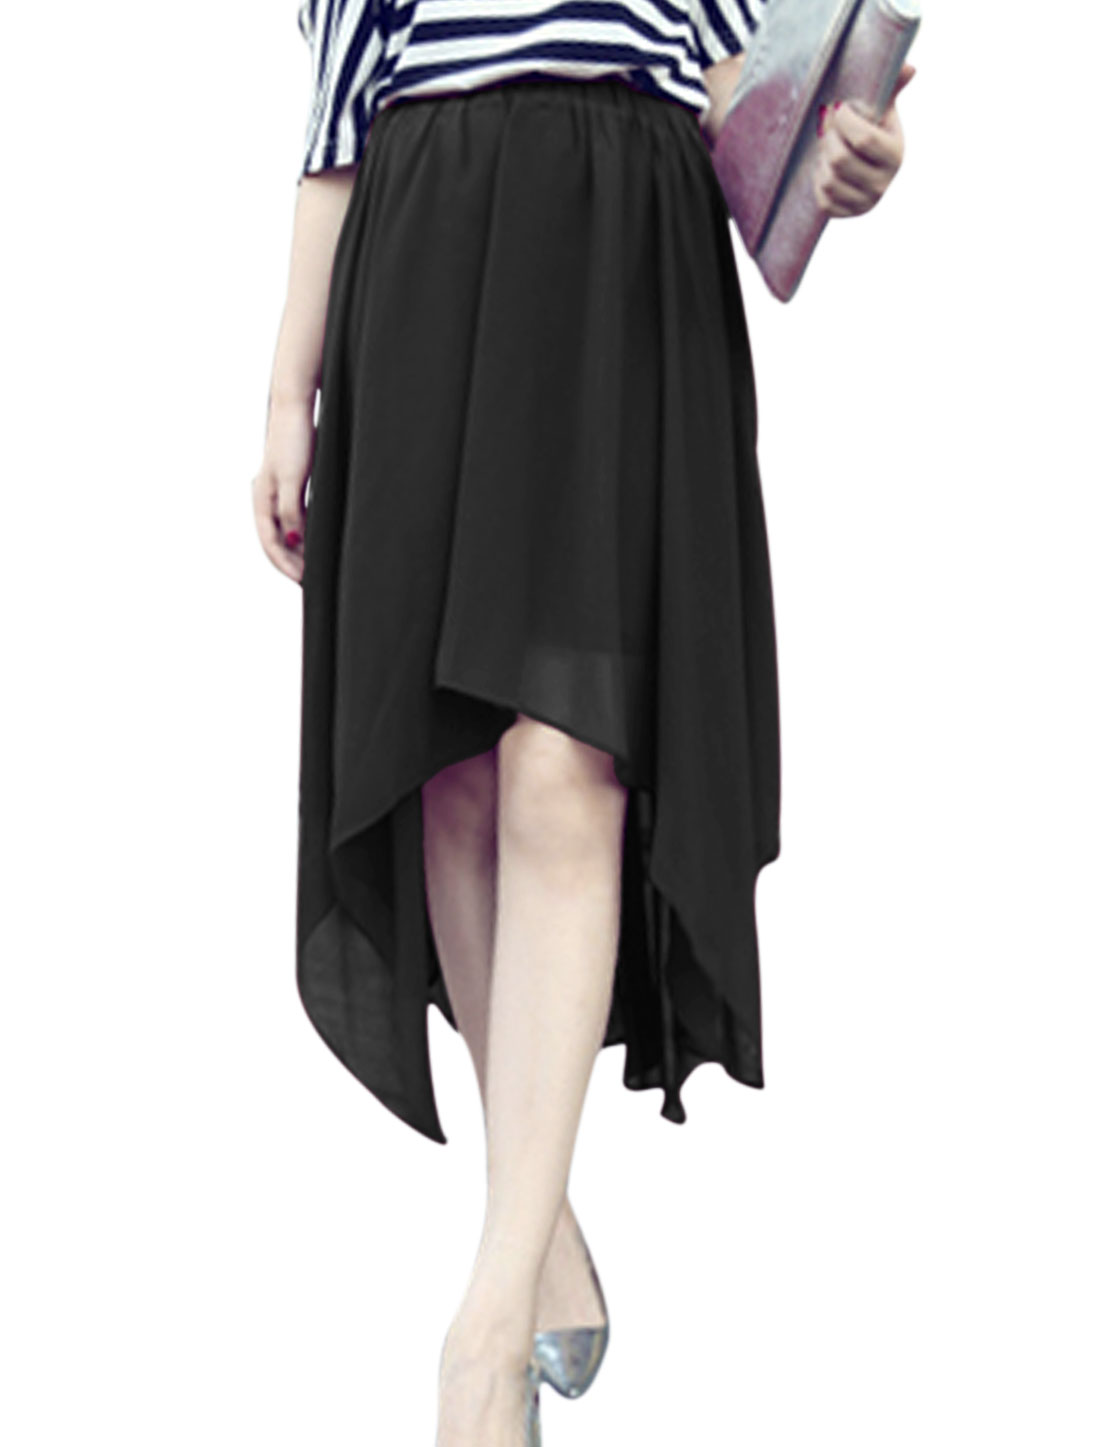 Lady's Summer Wear Elastic Waist Asymmetric Hem Black Chiffon Skirt XS